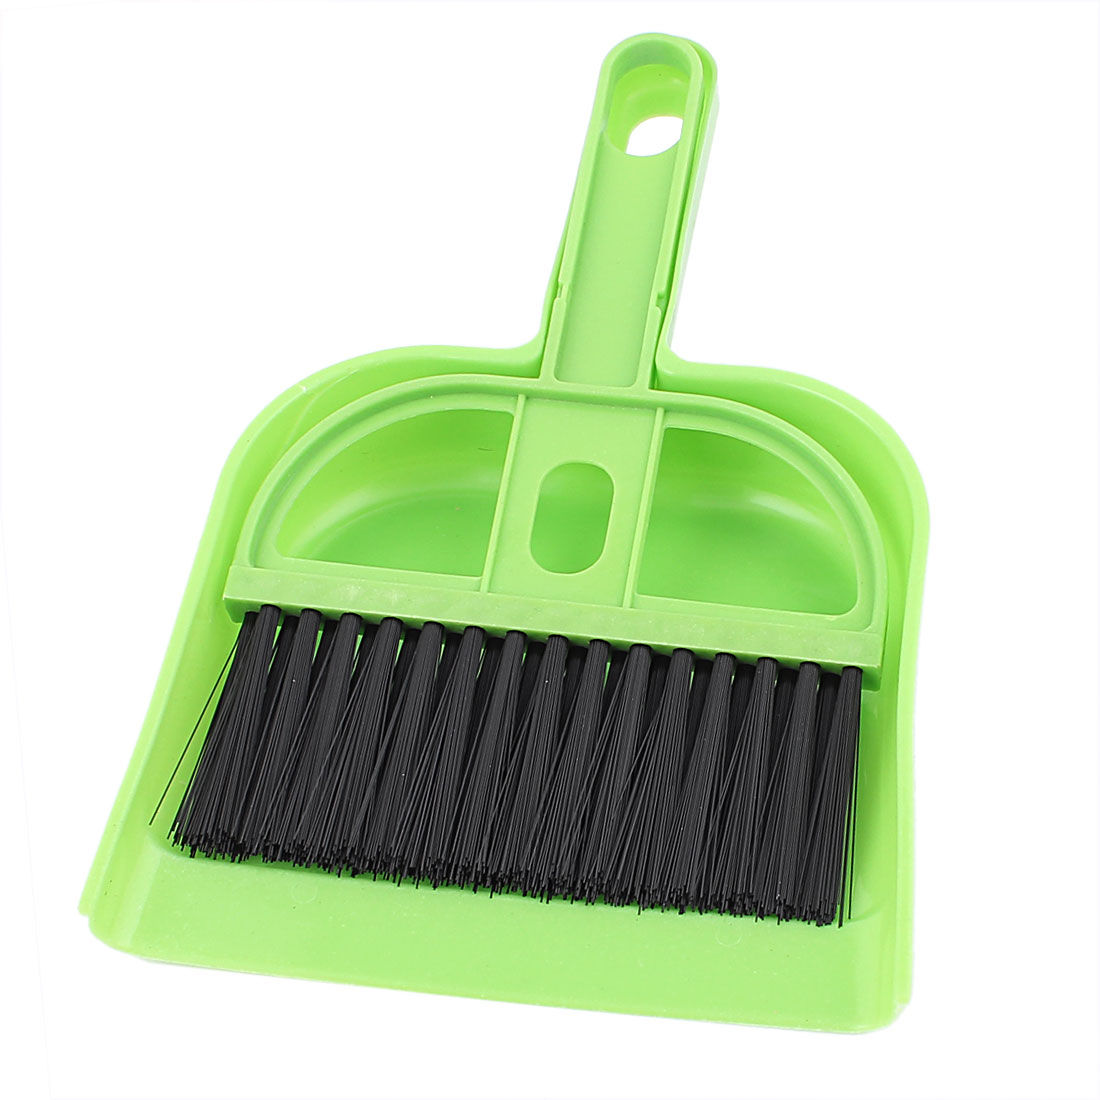 Keyboard Dashboard Console Vent Air Outlet Cleaner Brush Broom Dustpan Set Green